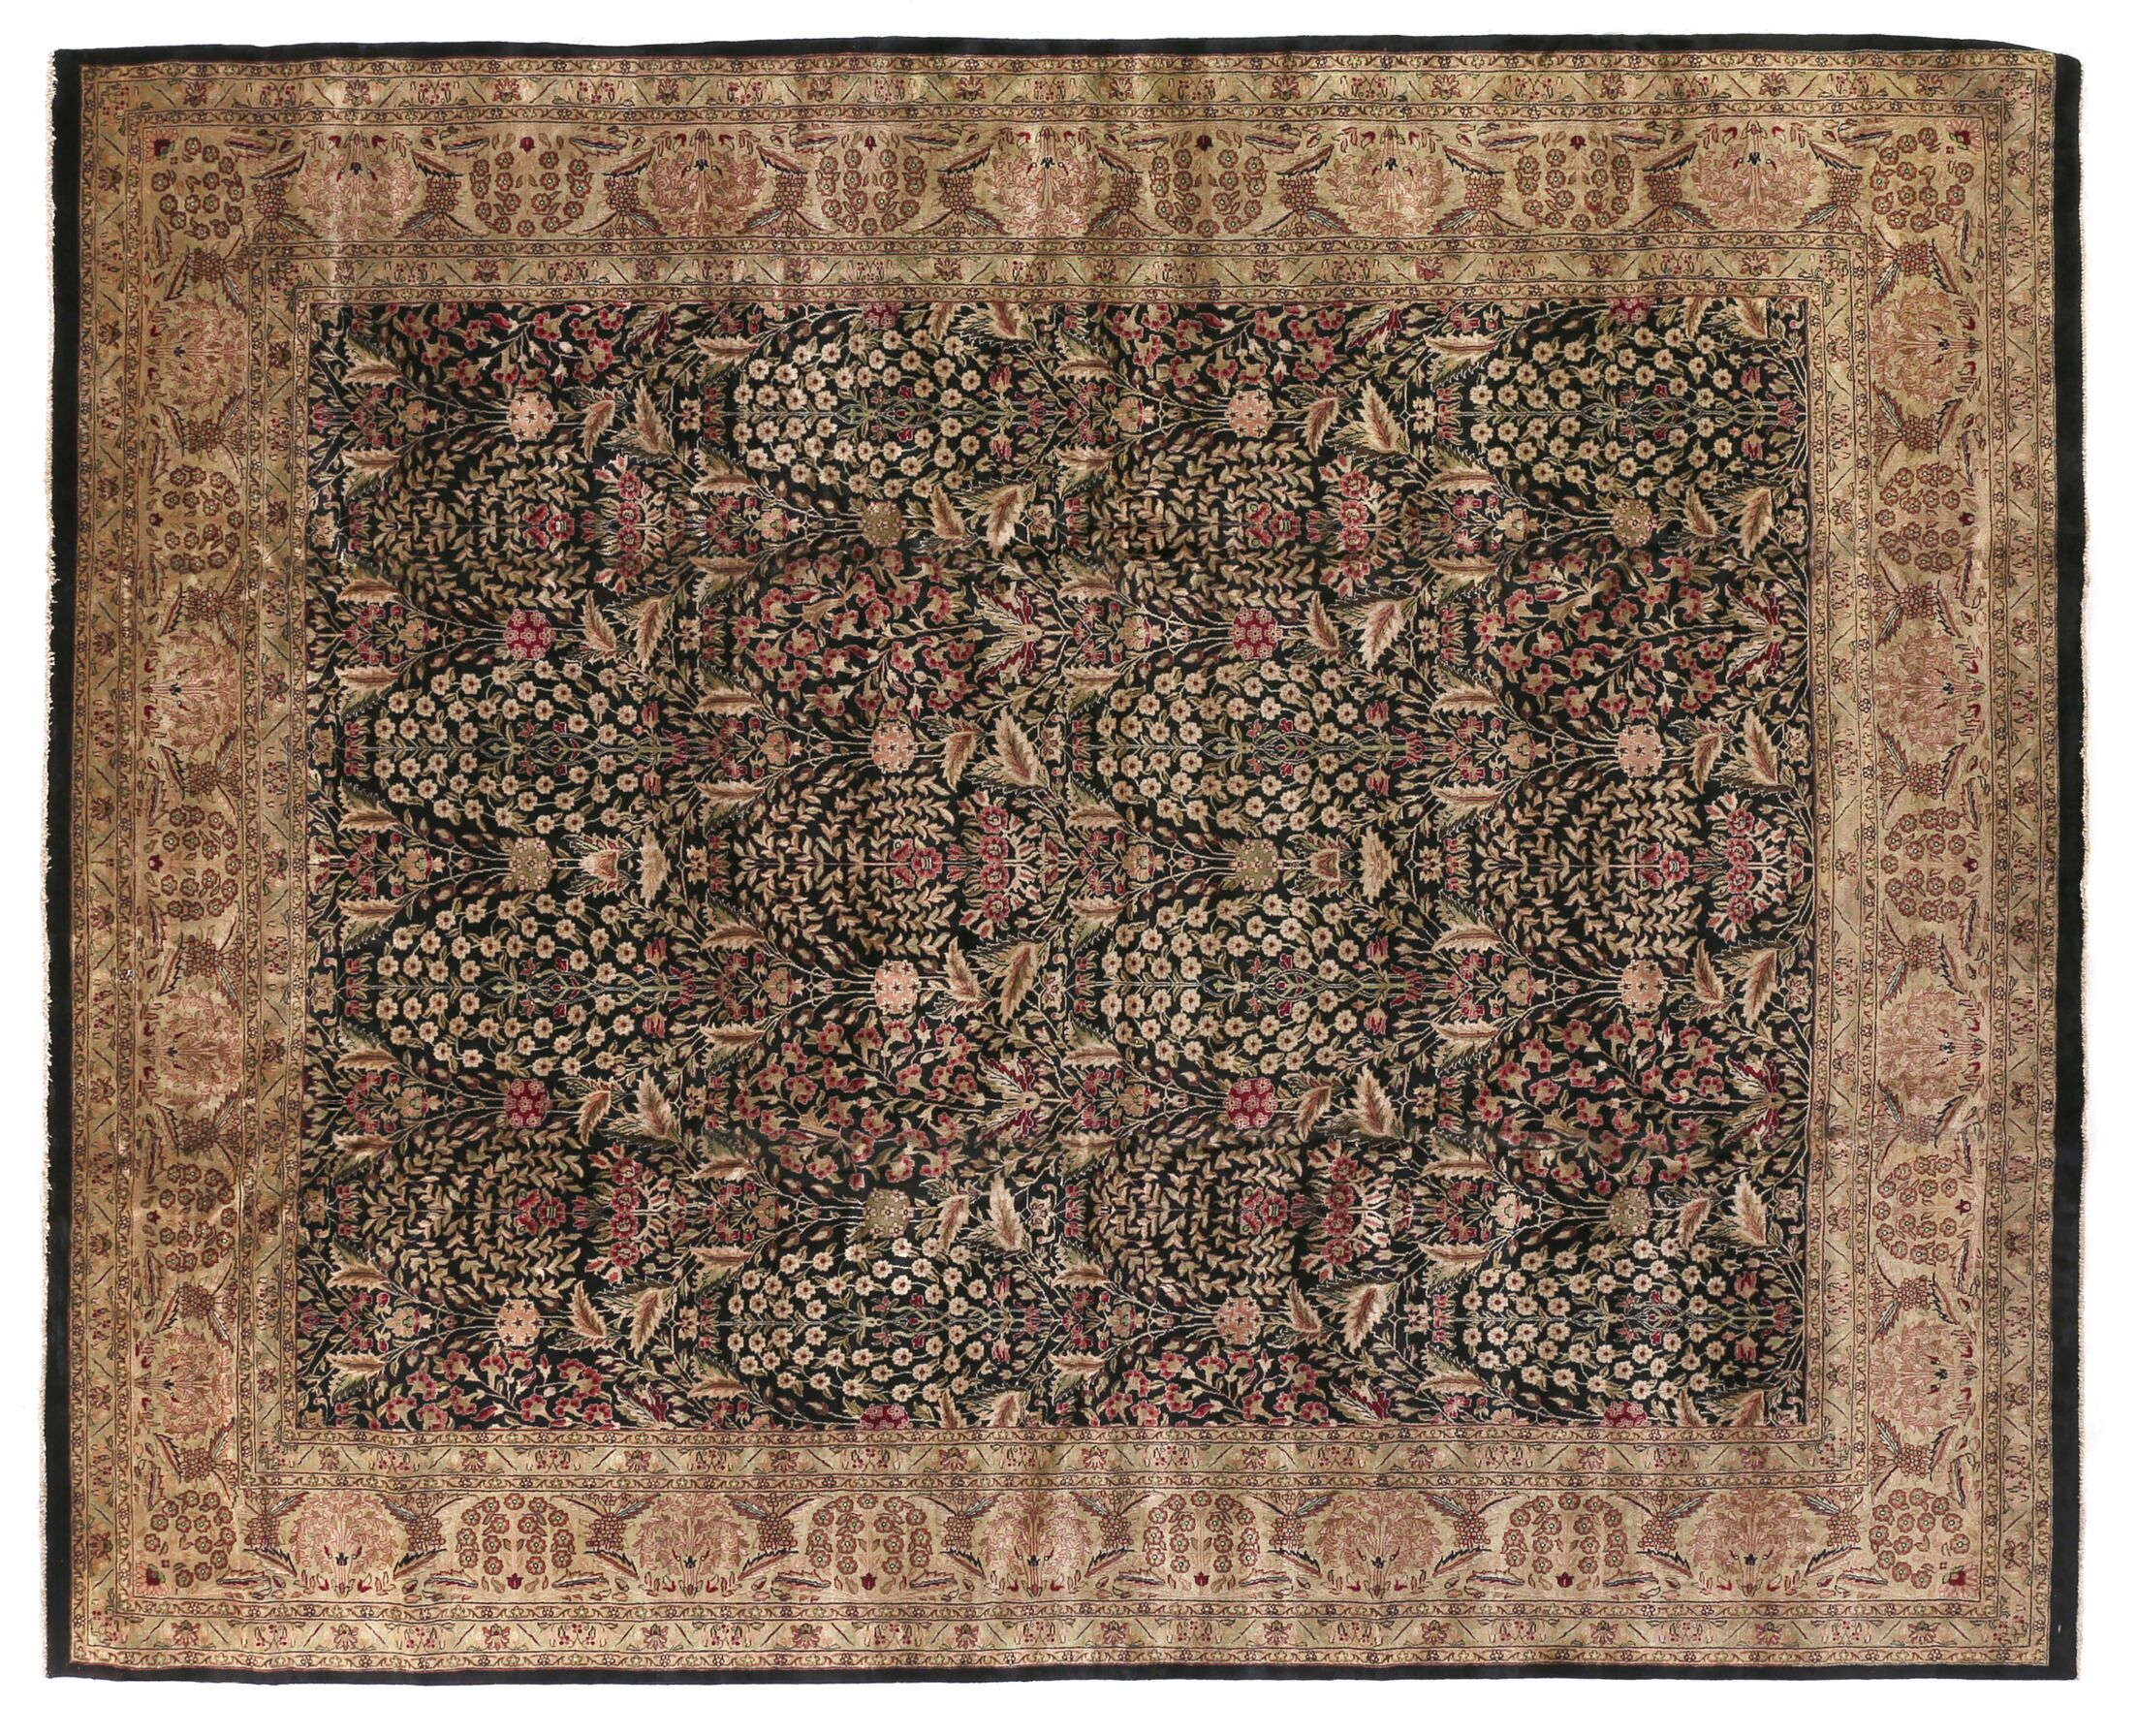 Traditional Hand-Knotted Wool Black/Green Area Rug Rug Size: Rectangle 14' x 18'